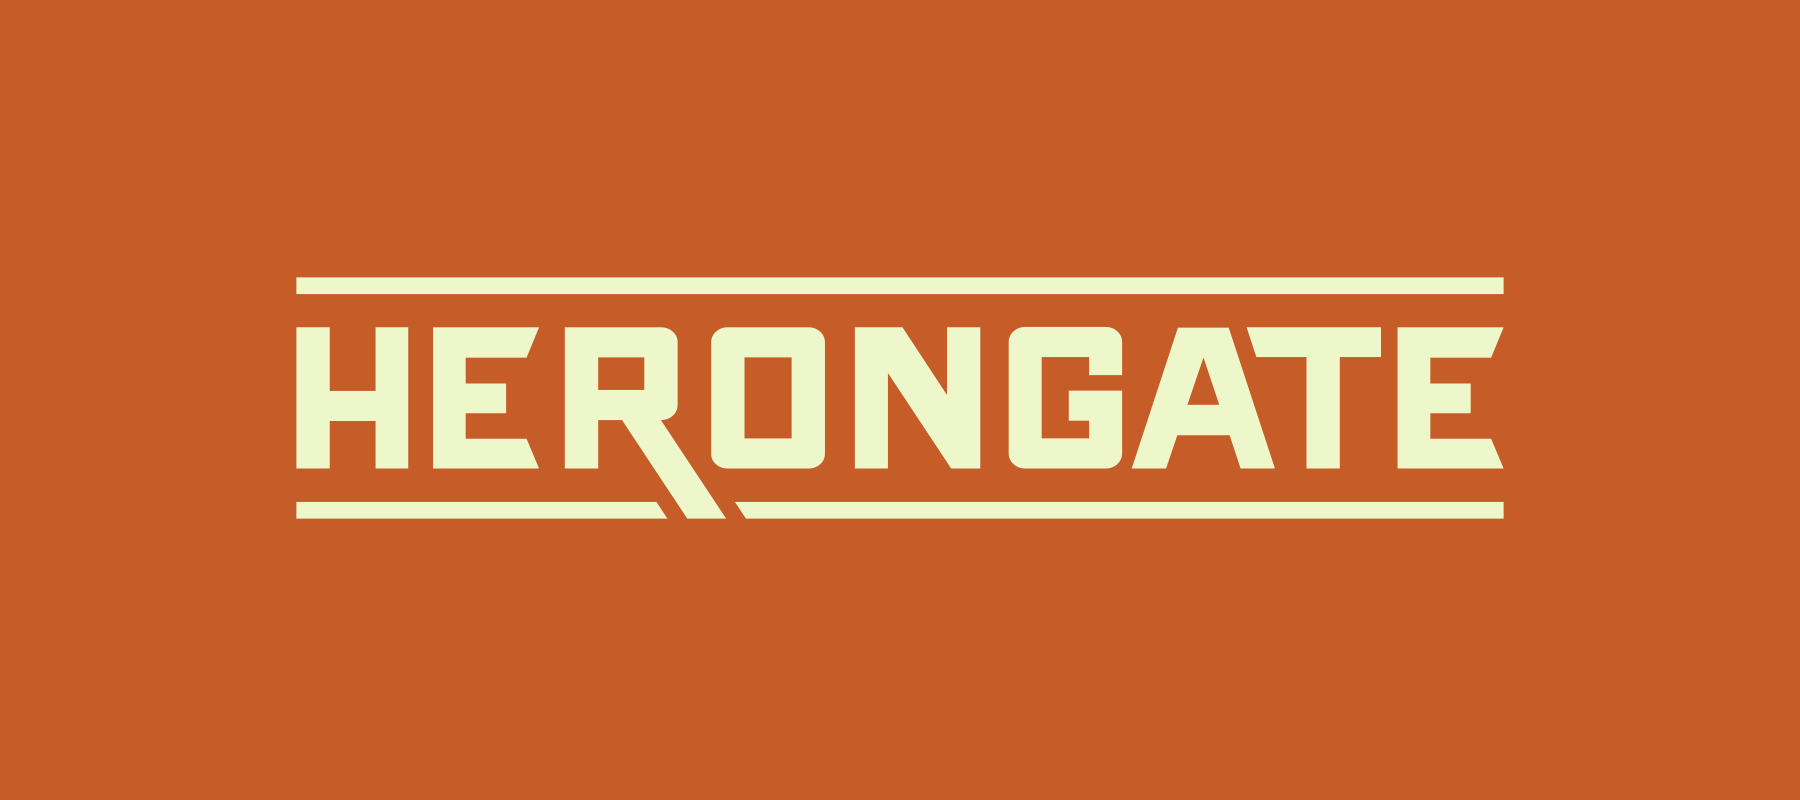 Herongate Logo Design